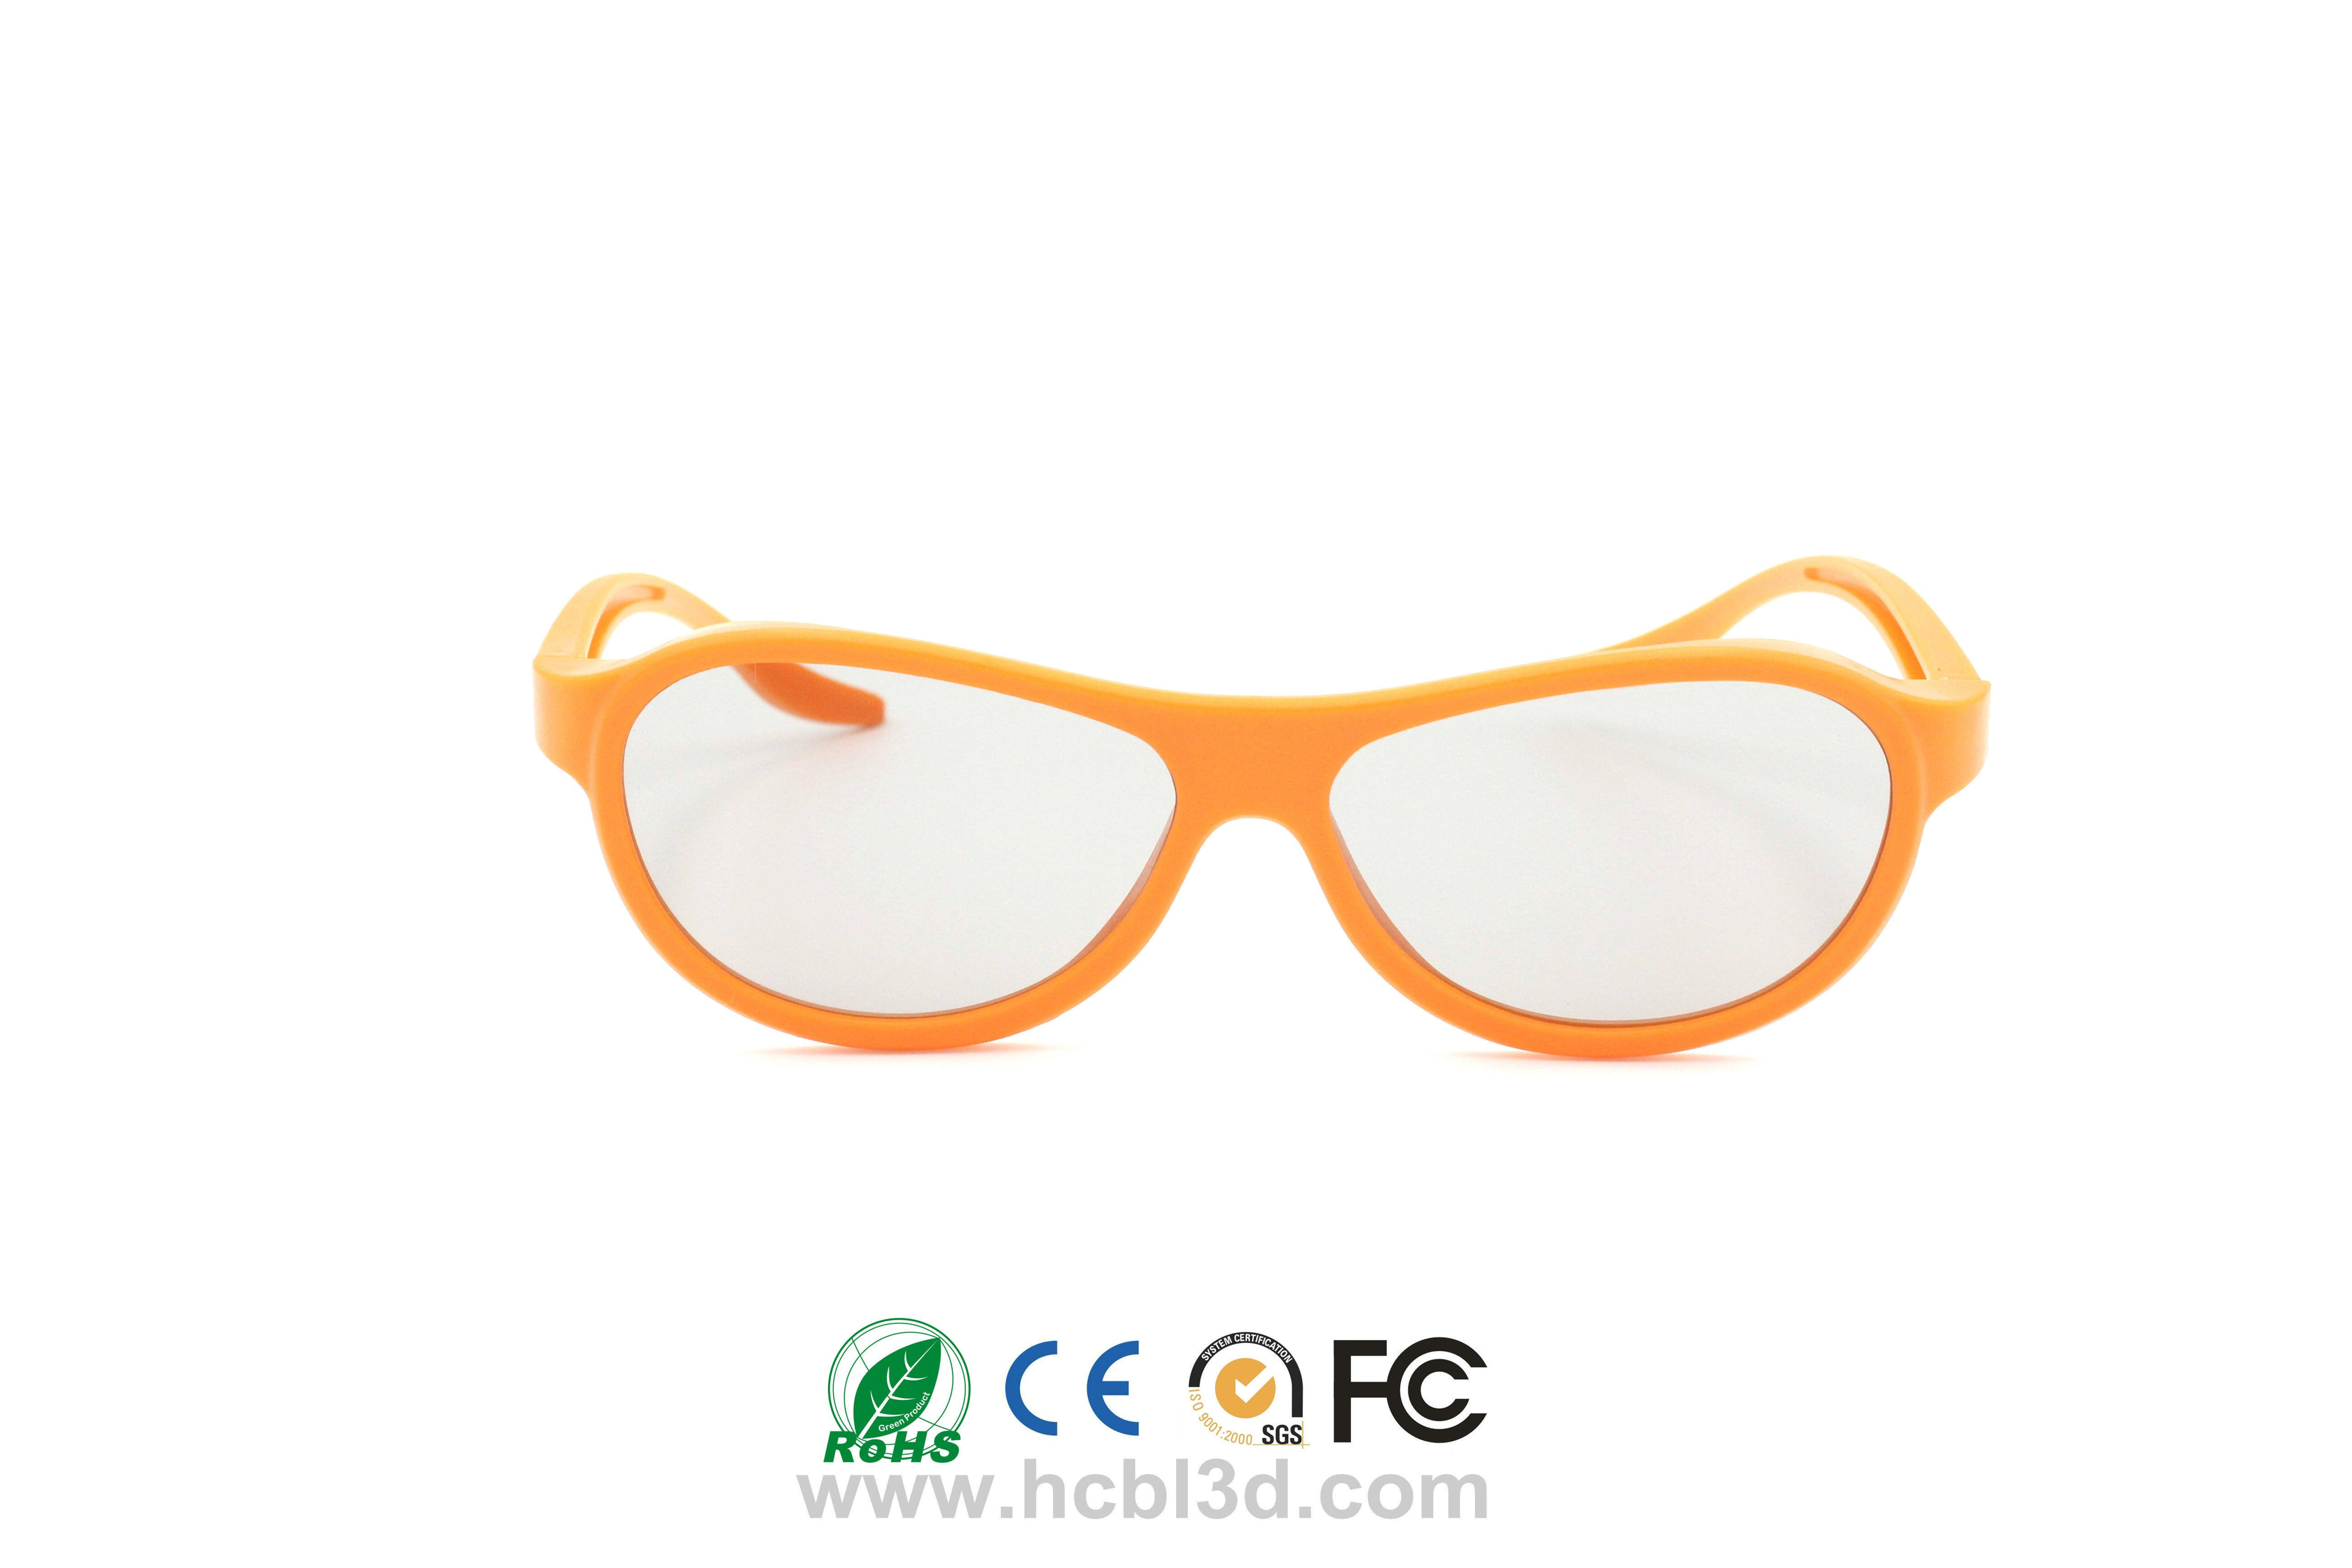 Disposable passive 3D glasses with orange ABS frame for adult & child